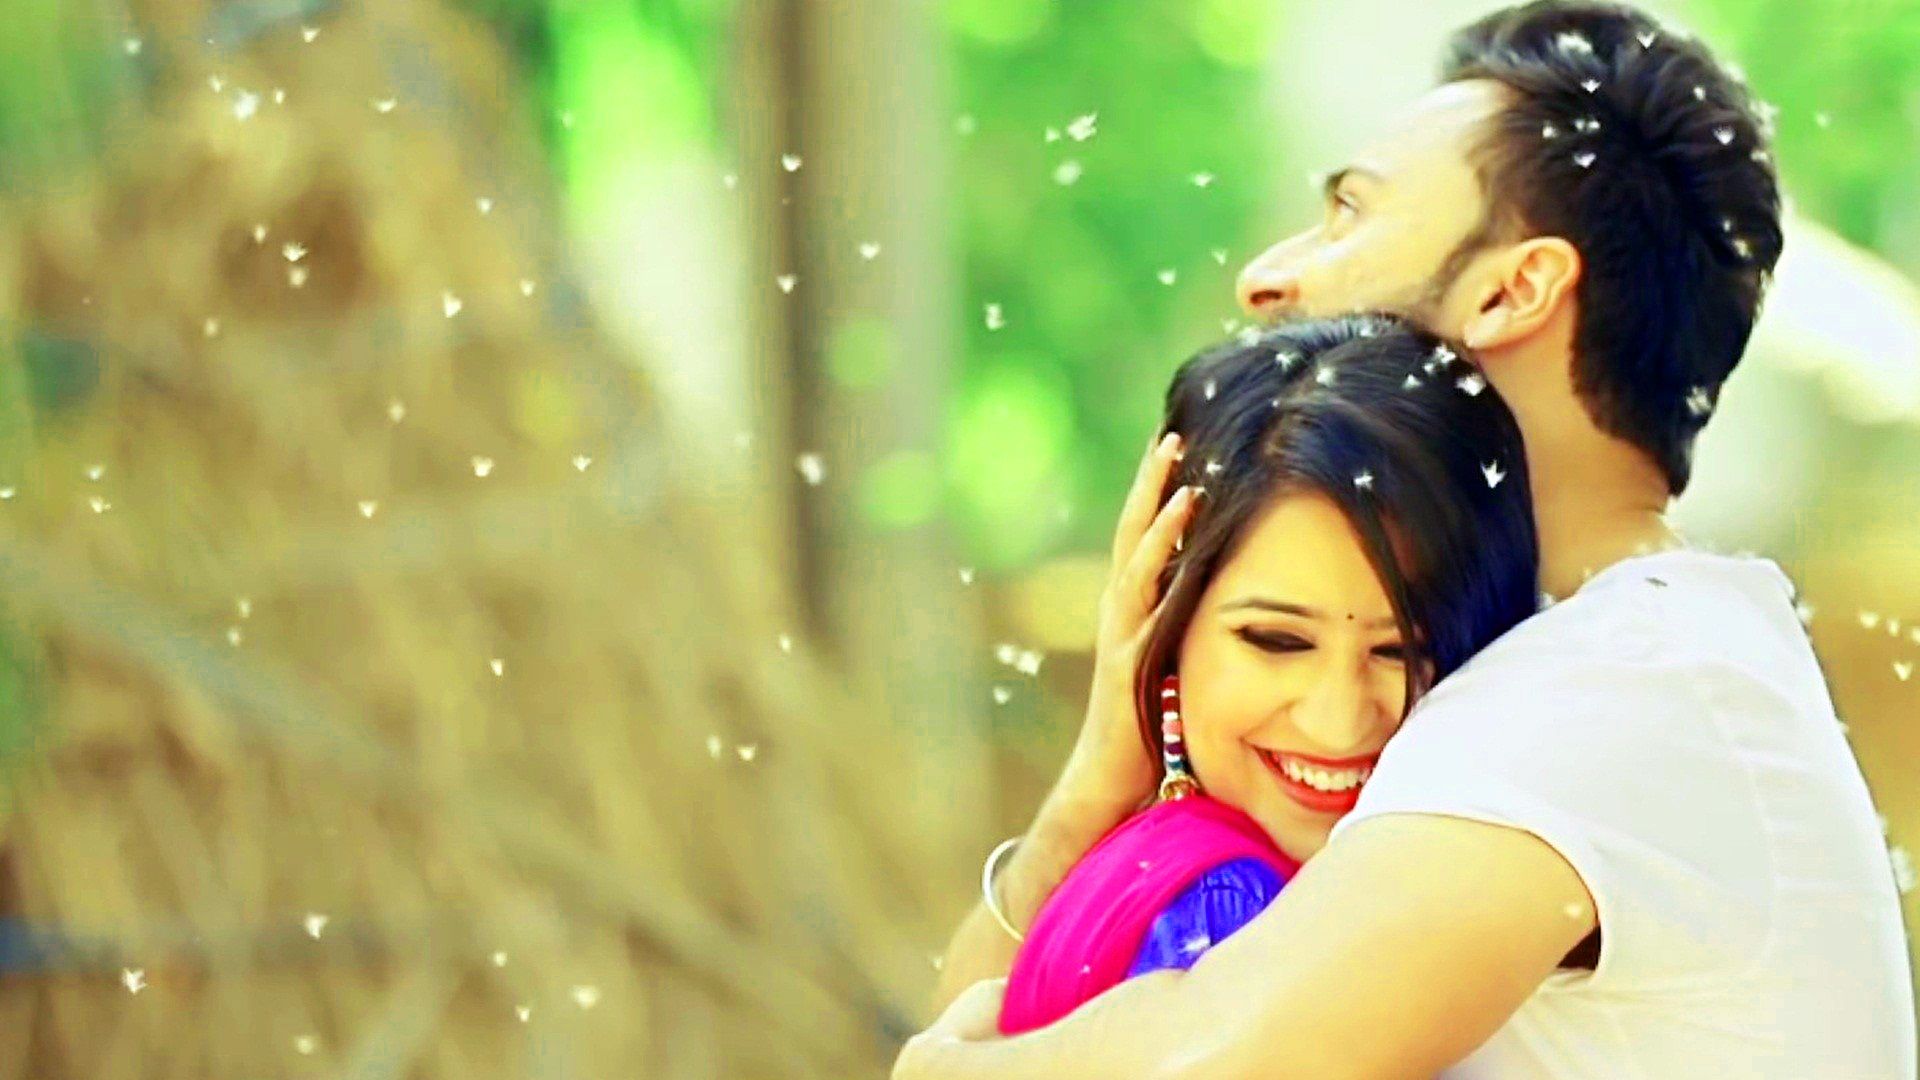 Sweet Cute Punjabi Wedding Lover Love Couple Photo Wallpaper Pictures Download